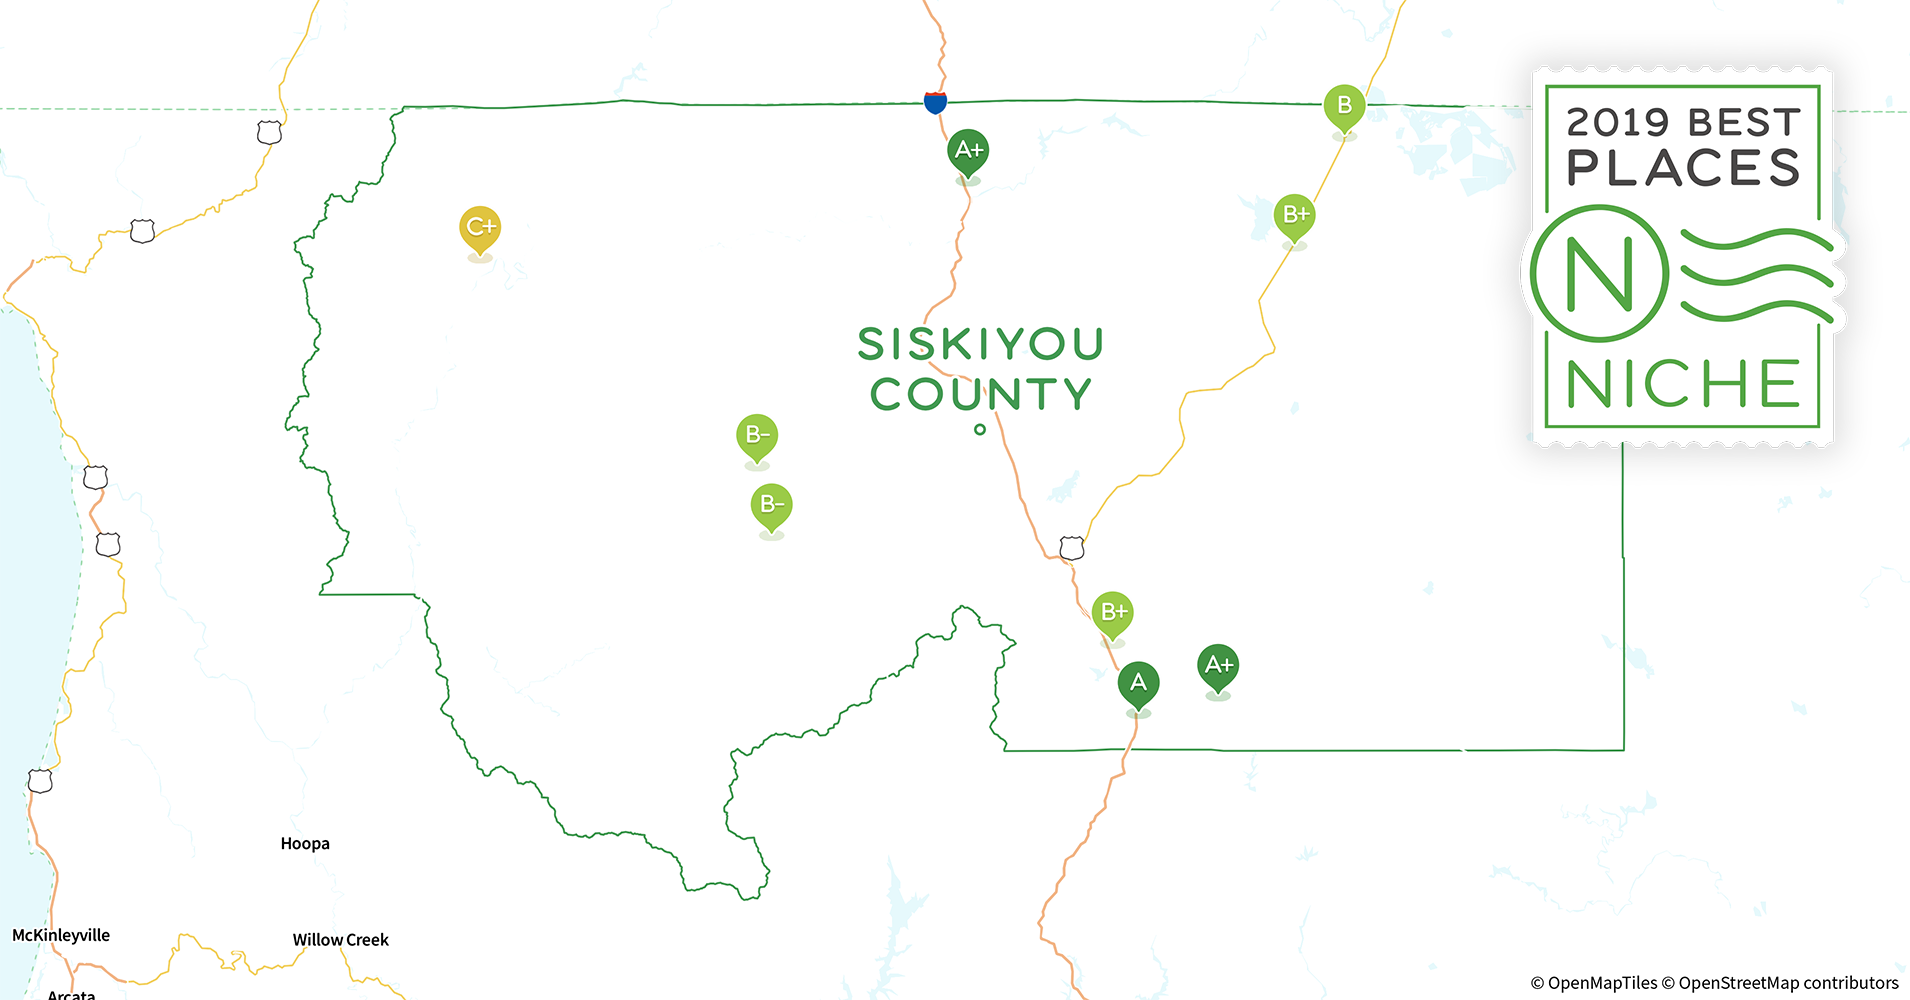 2019 Best Places To Live In Siskiyou County Ca Niche